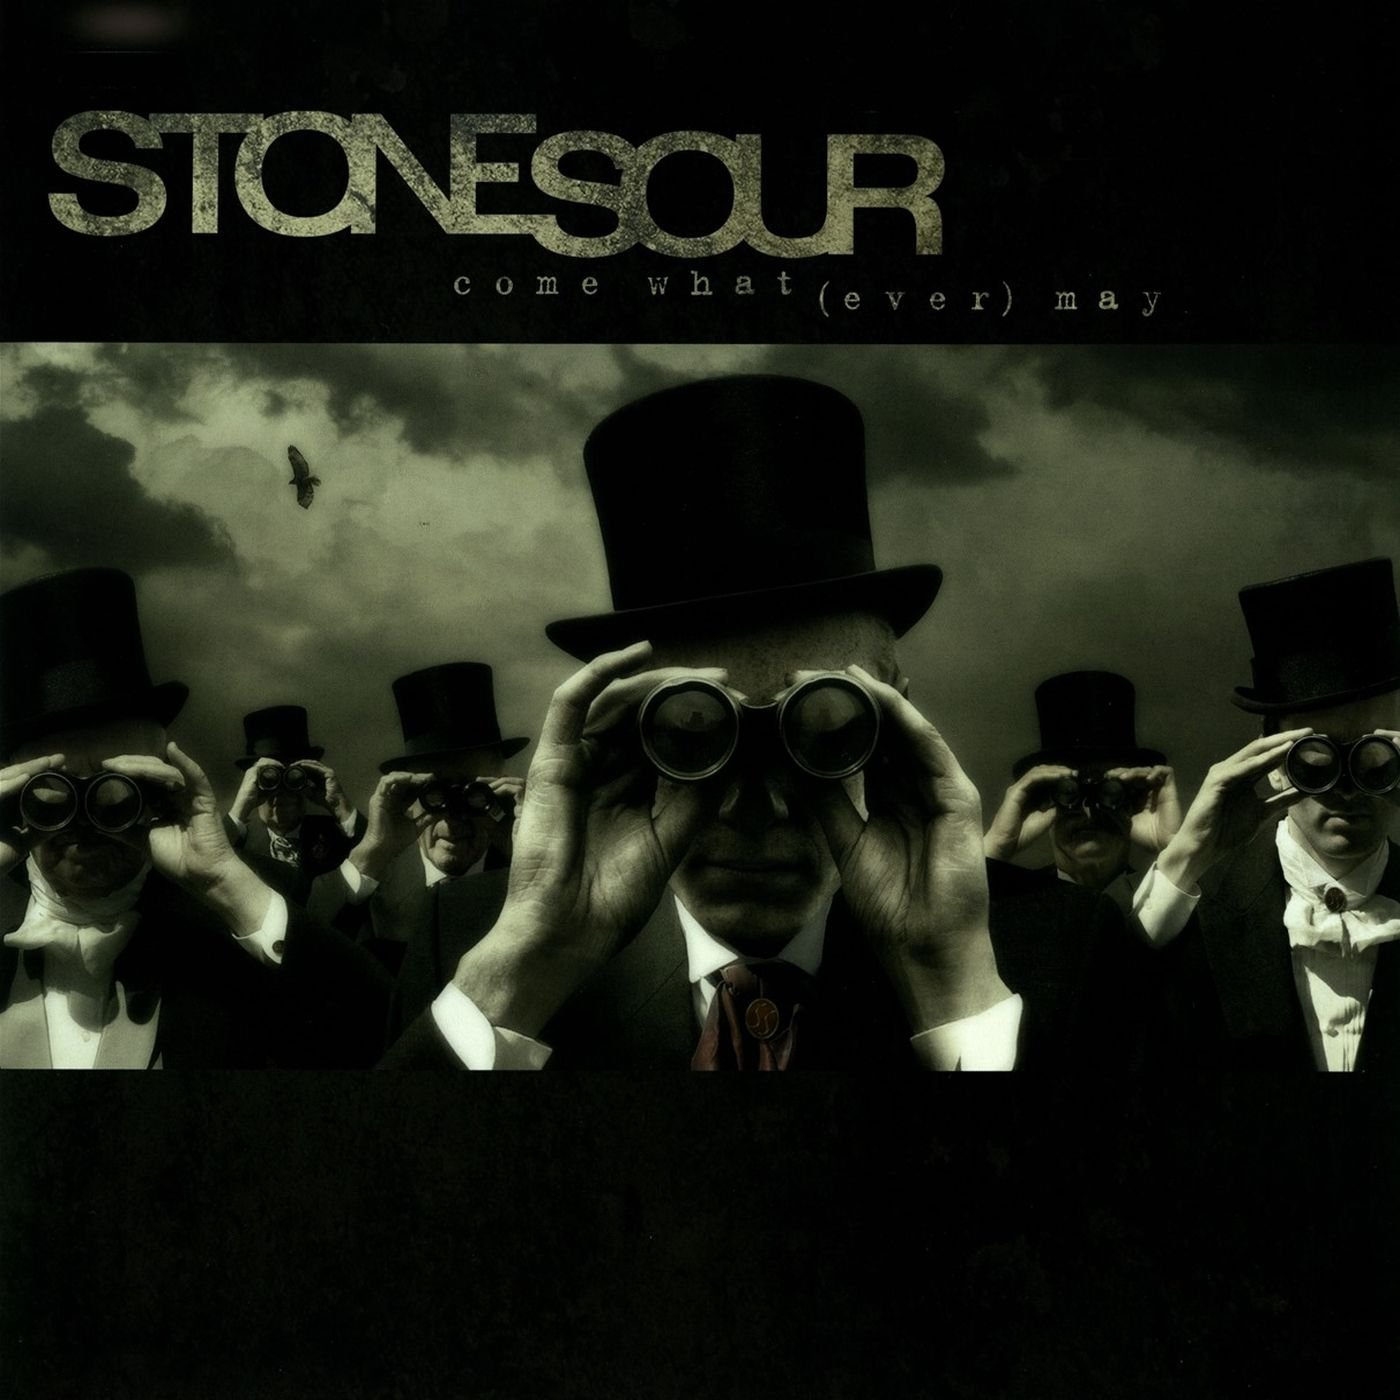 Vinilo : Stone Sour - Come What(Ever) May (10th Anniversary Edition) [Explicit Content] (Anniversary Edition, Digital Download Card, 2 Disc)